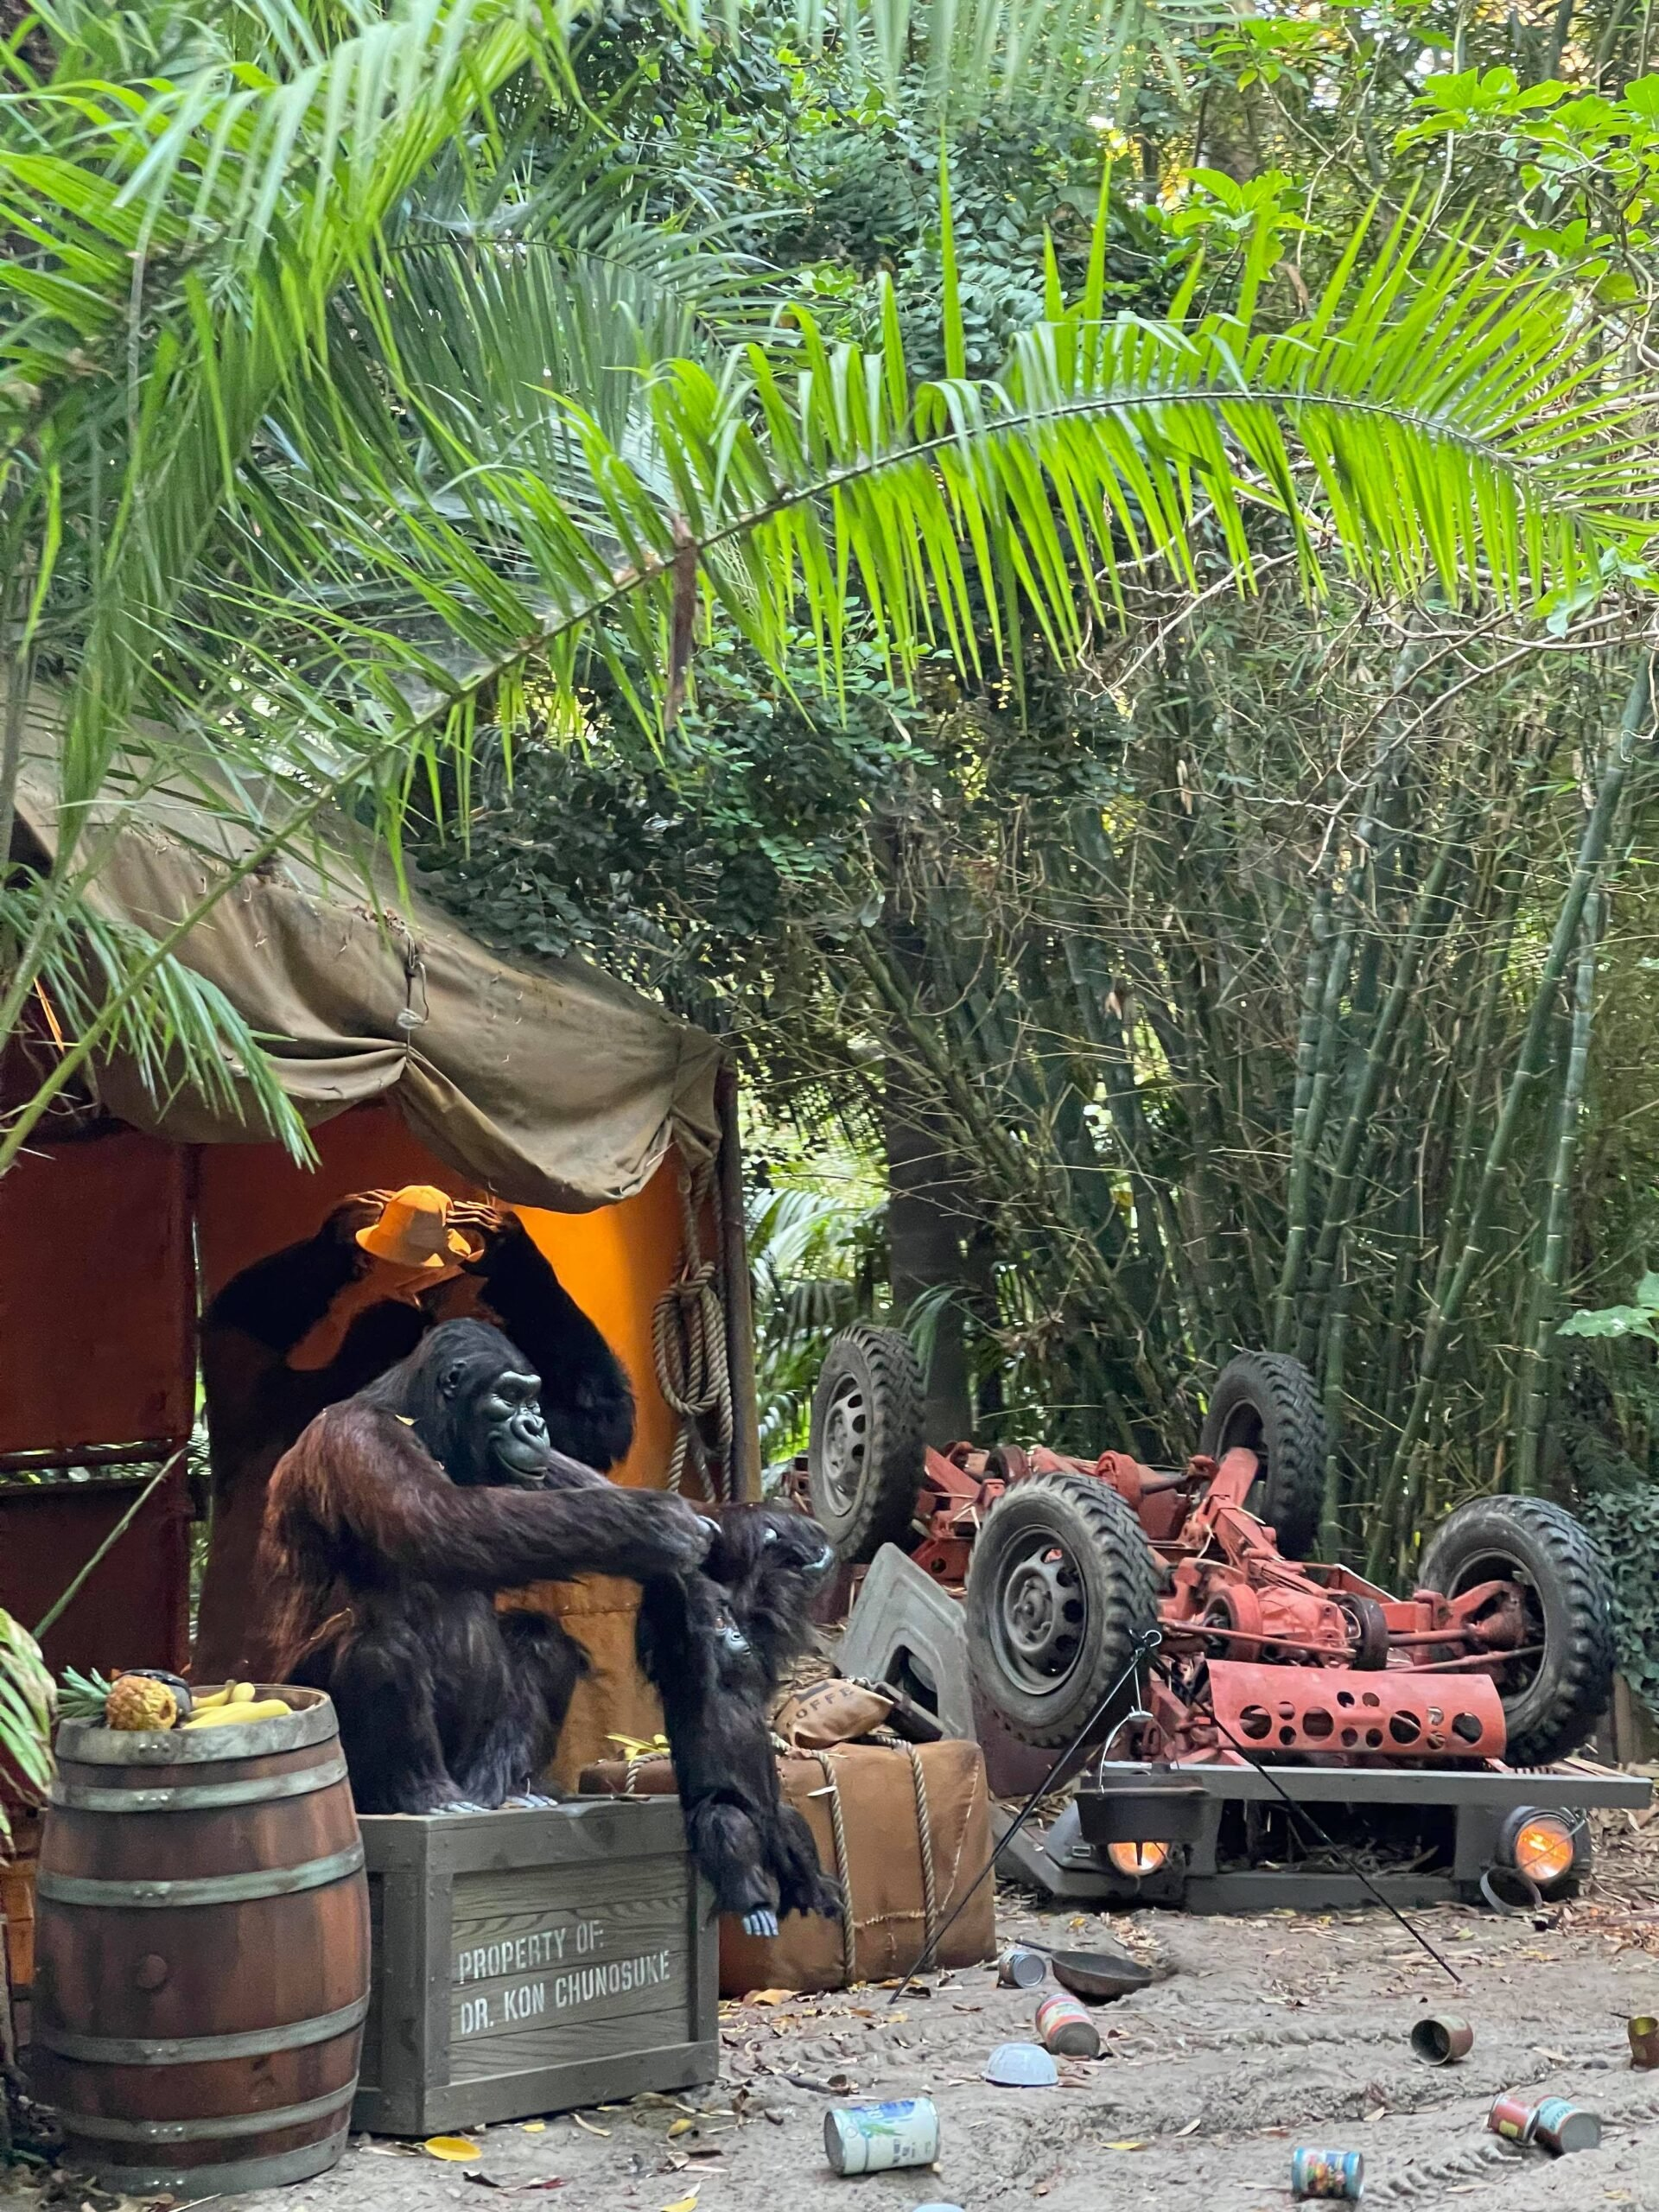 Take a voyage on the all new Jungle Cruise in Disneyland 5